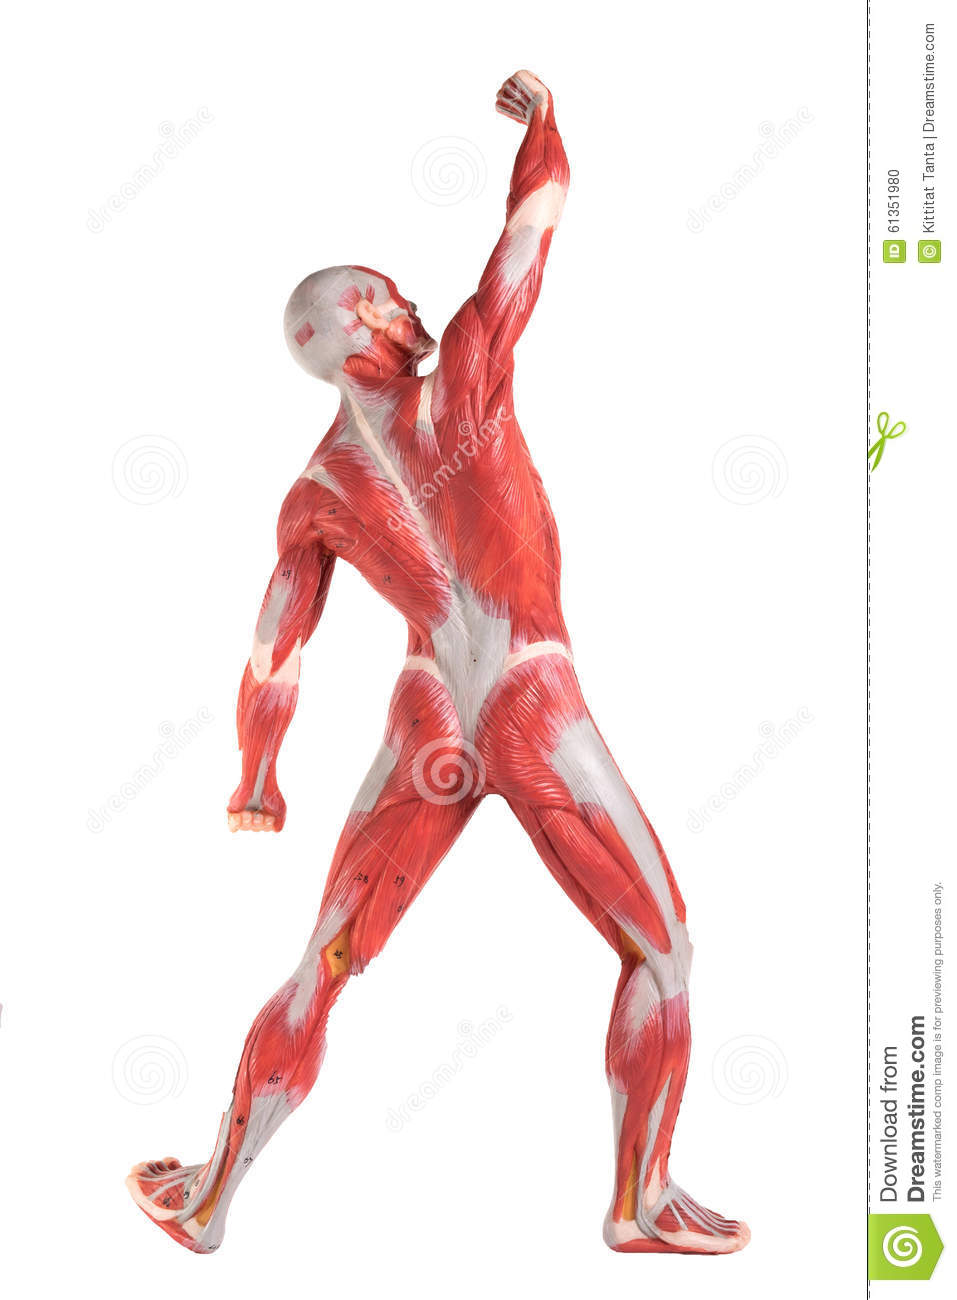 Male Anatomy Of Muscular System Stock Photo - Image of muscular ...